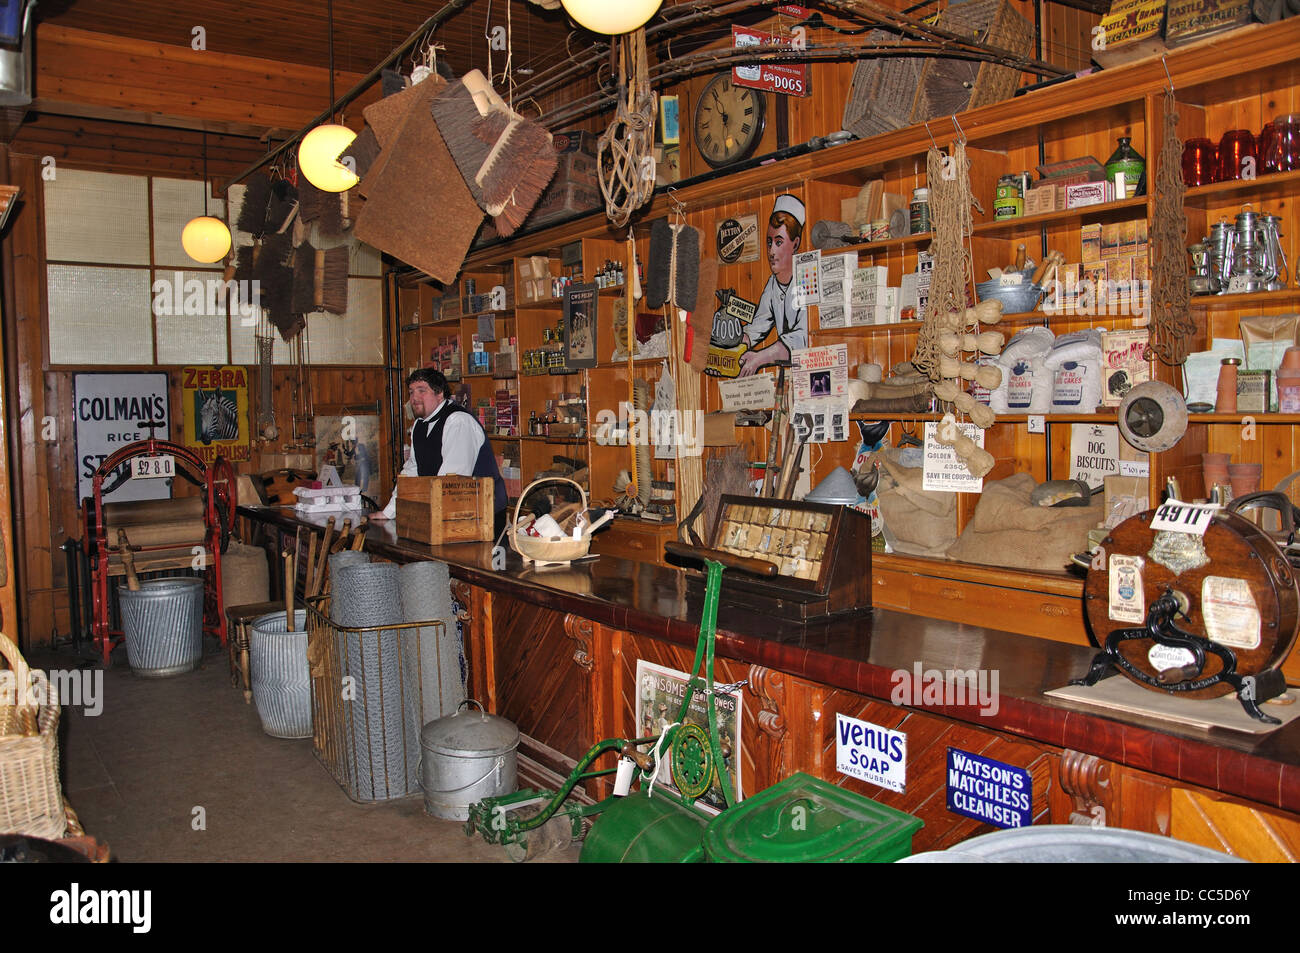 General store in Edwardian Town, Beamish, The North of England Open Air Museum, County Durham, England, United Kingdom - Stock Image